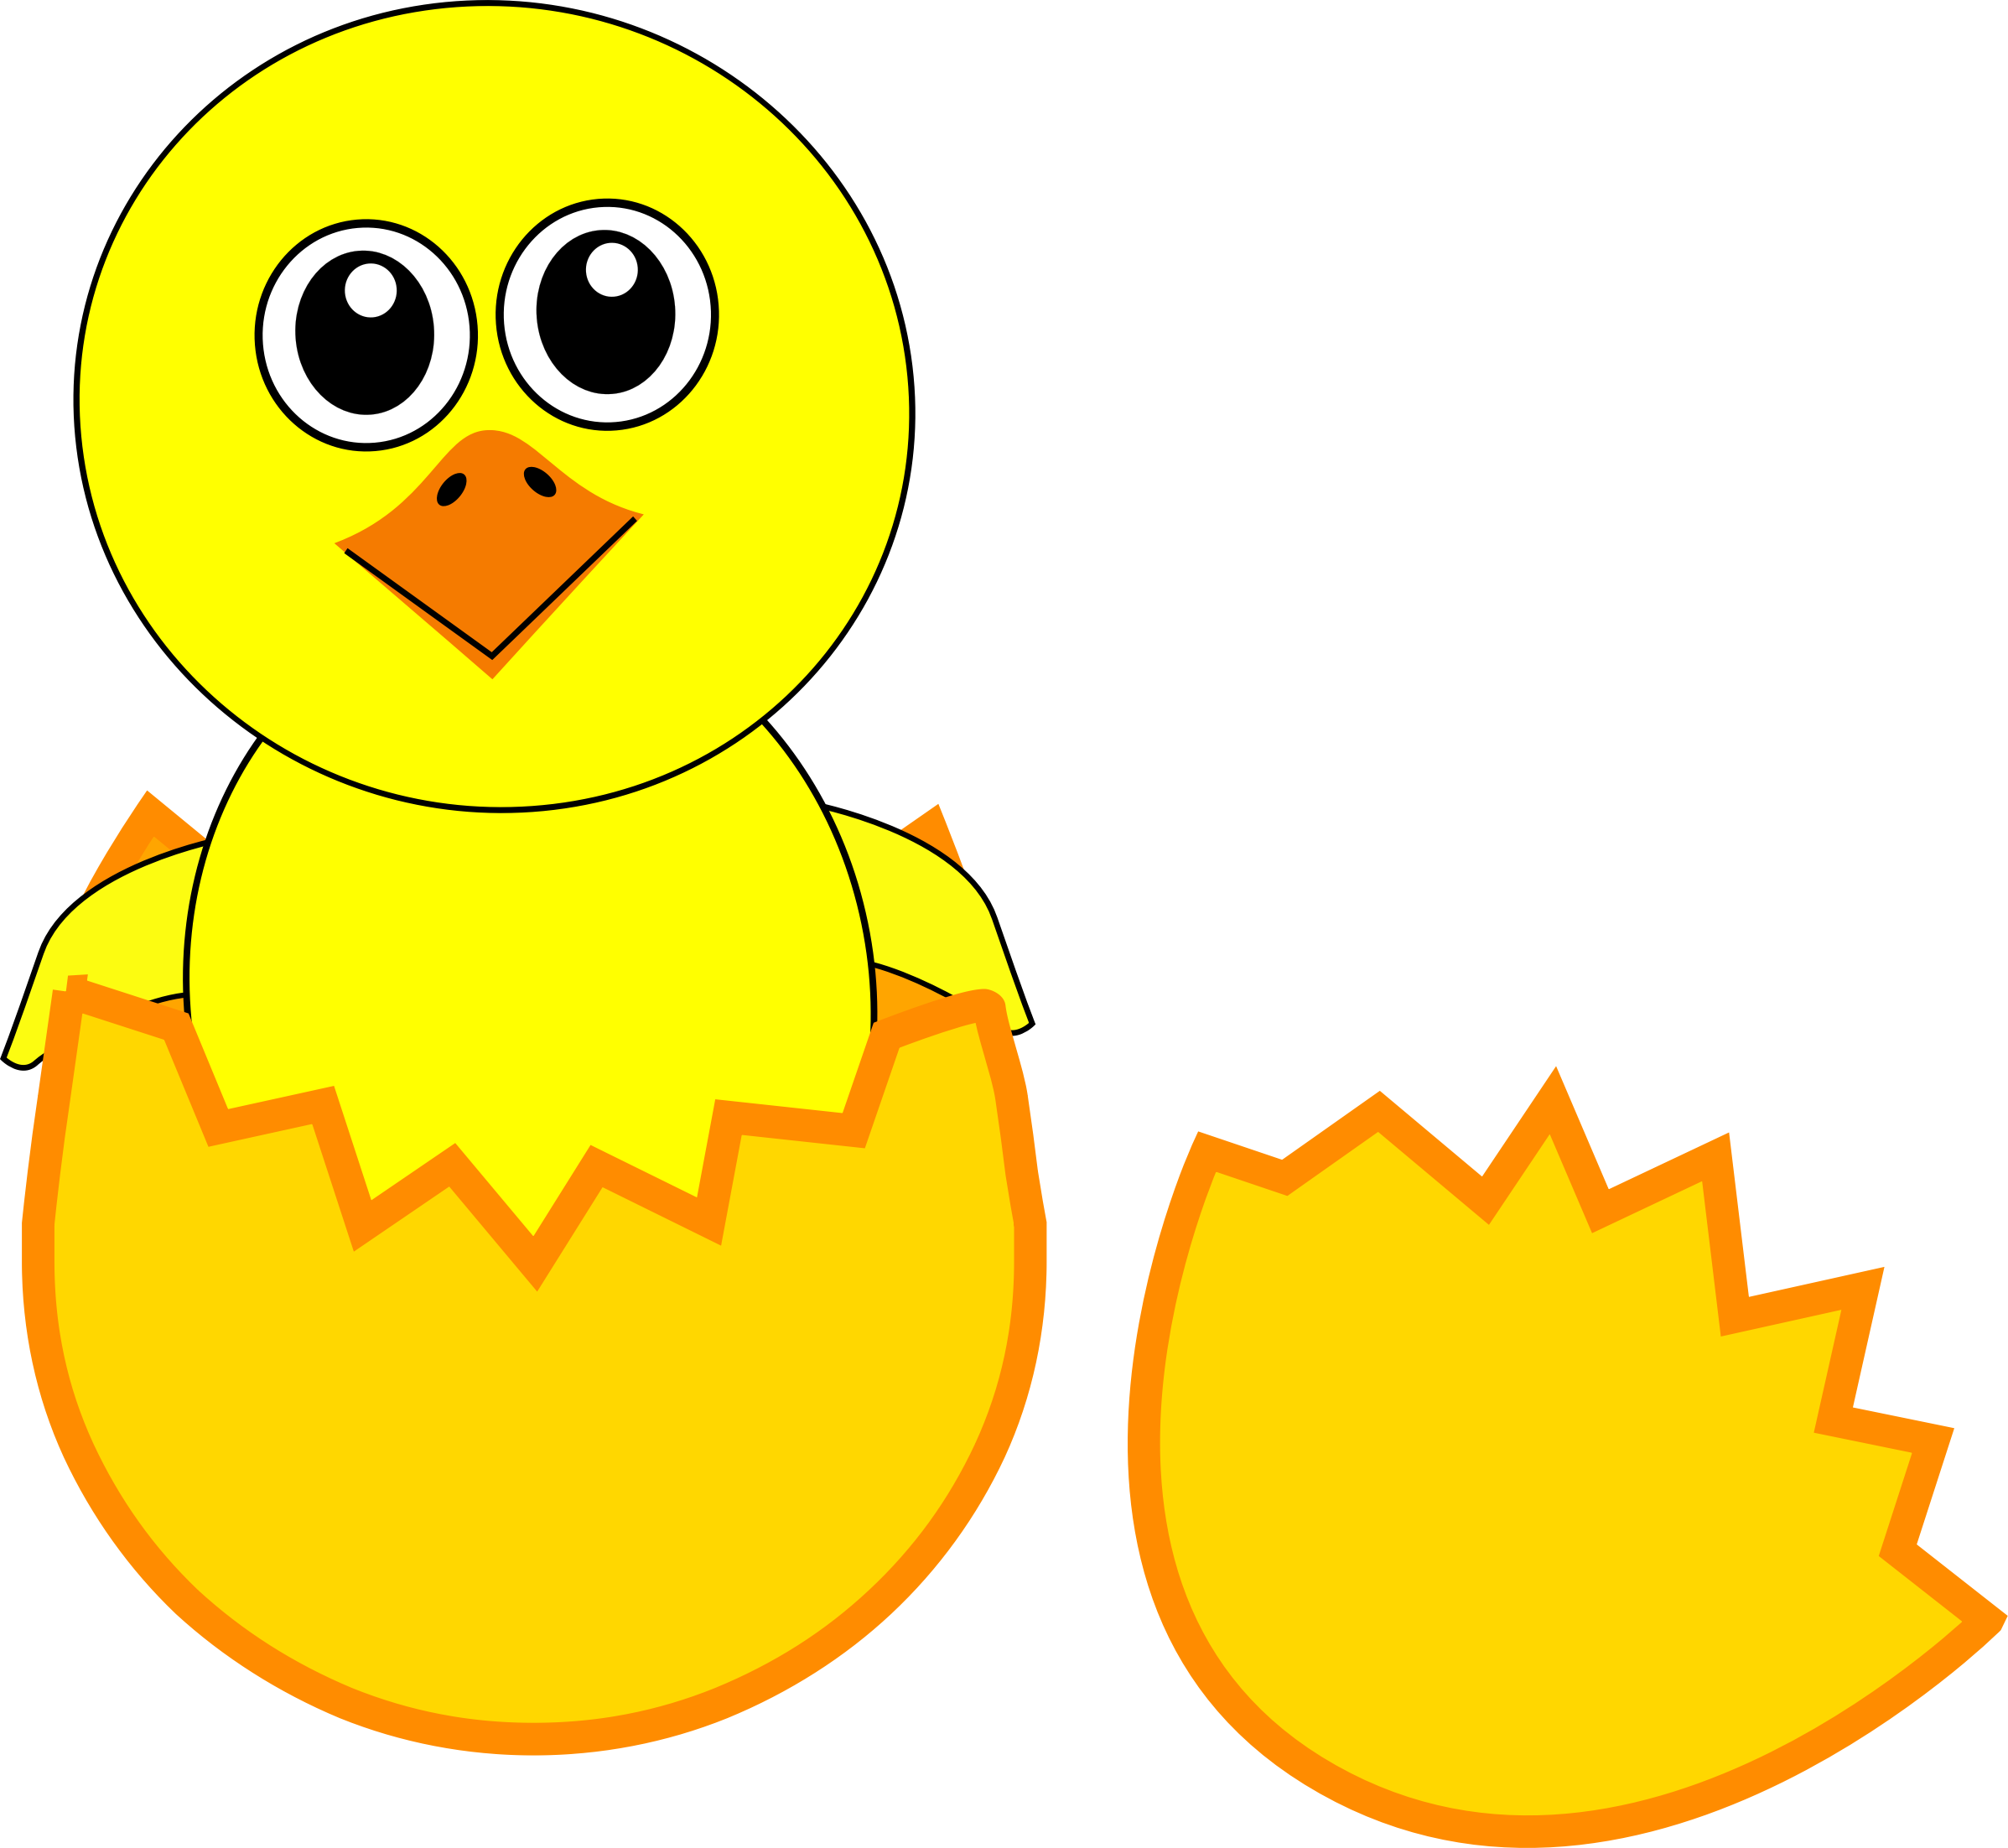 Chicken Cartoon Kifaranga Clip art.